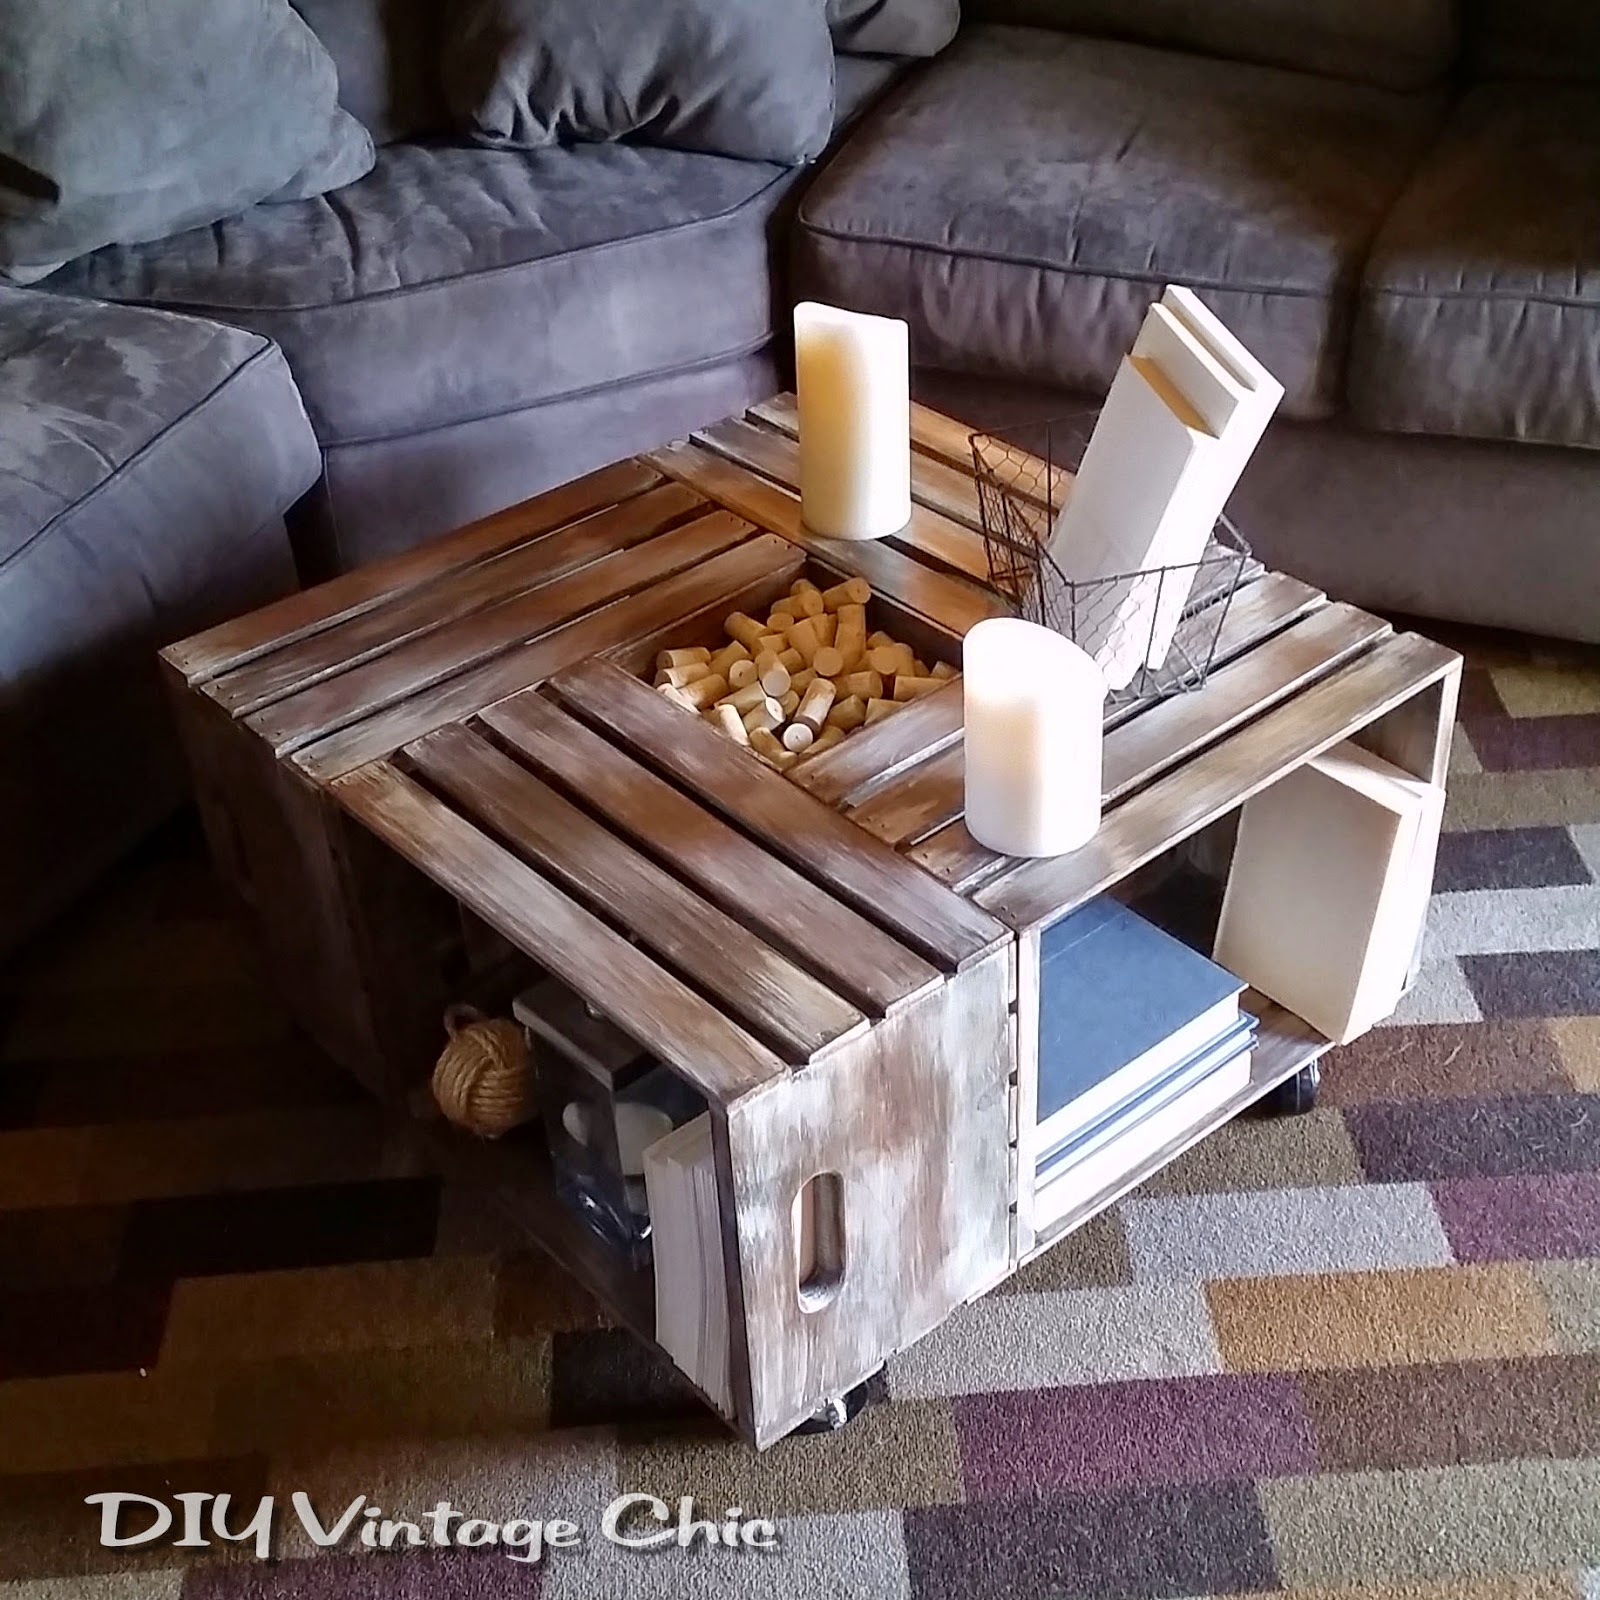 DIY Vintage Chic: DIY Vintage Wine Crate Coffee Table ~ Whitewash